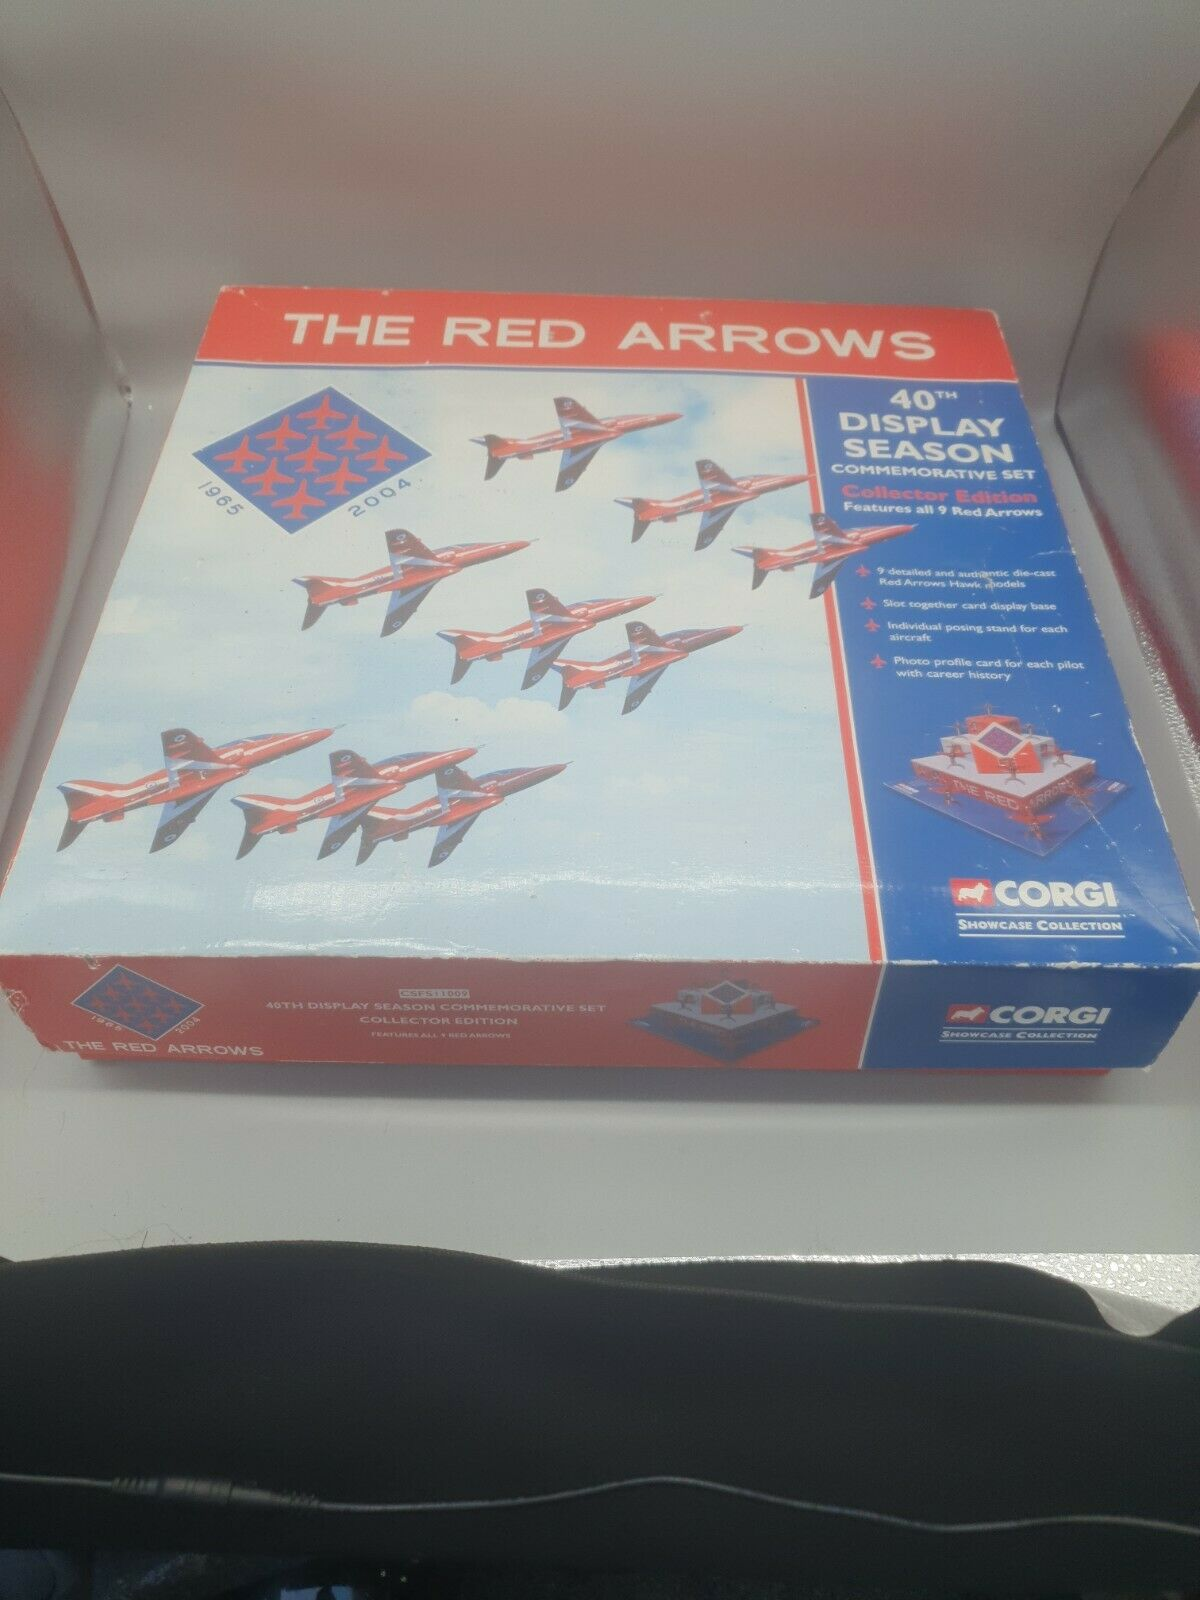 Corgi Small Scale Diecast Csfs11009 Red Arrow 40th Display Season Card Stand For Sale Online Ebay The stand arrows don't actually have to be arrows to affect people. corgi the red arrows 40th display season commemorative set collector edition